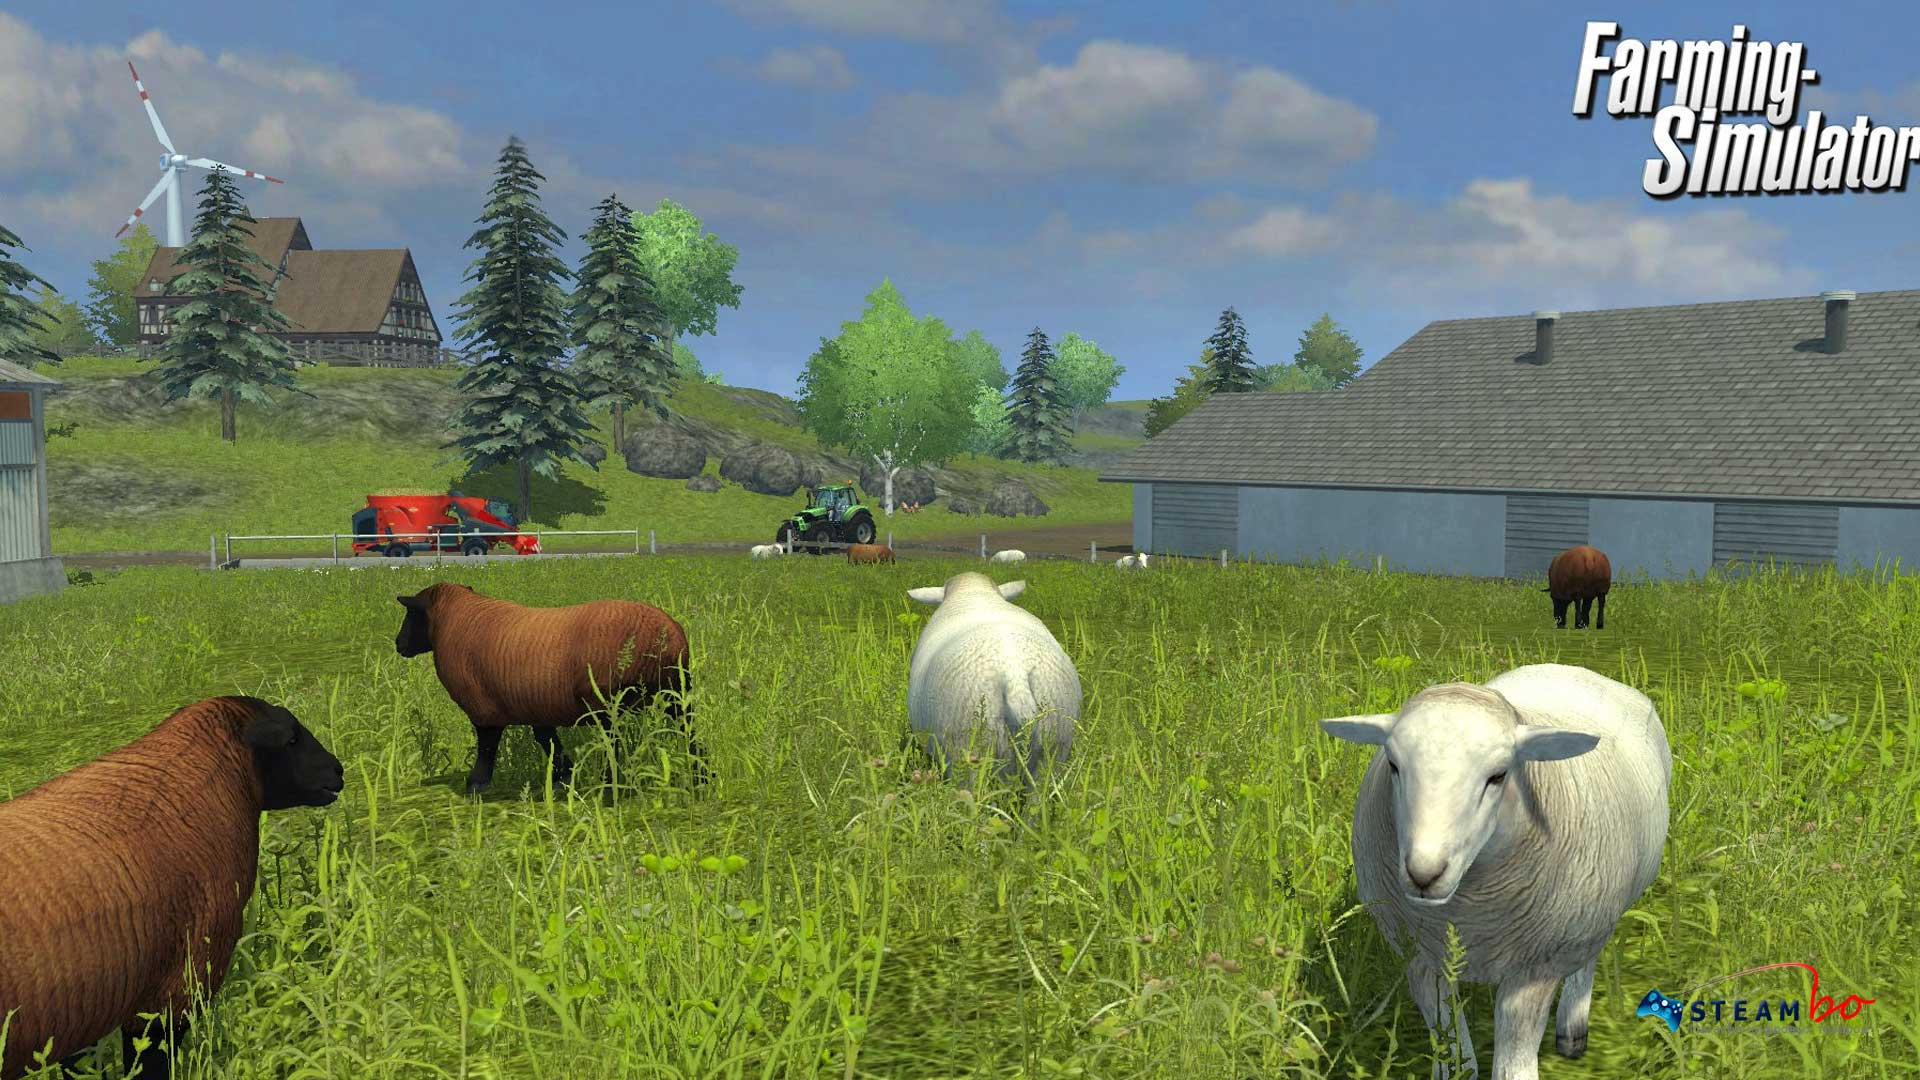 Farming Simulator 2013 Titanium Region Free Steam Gift